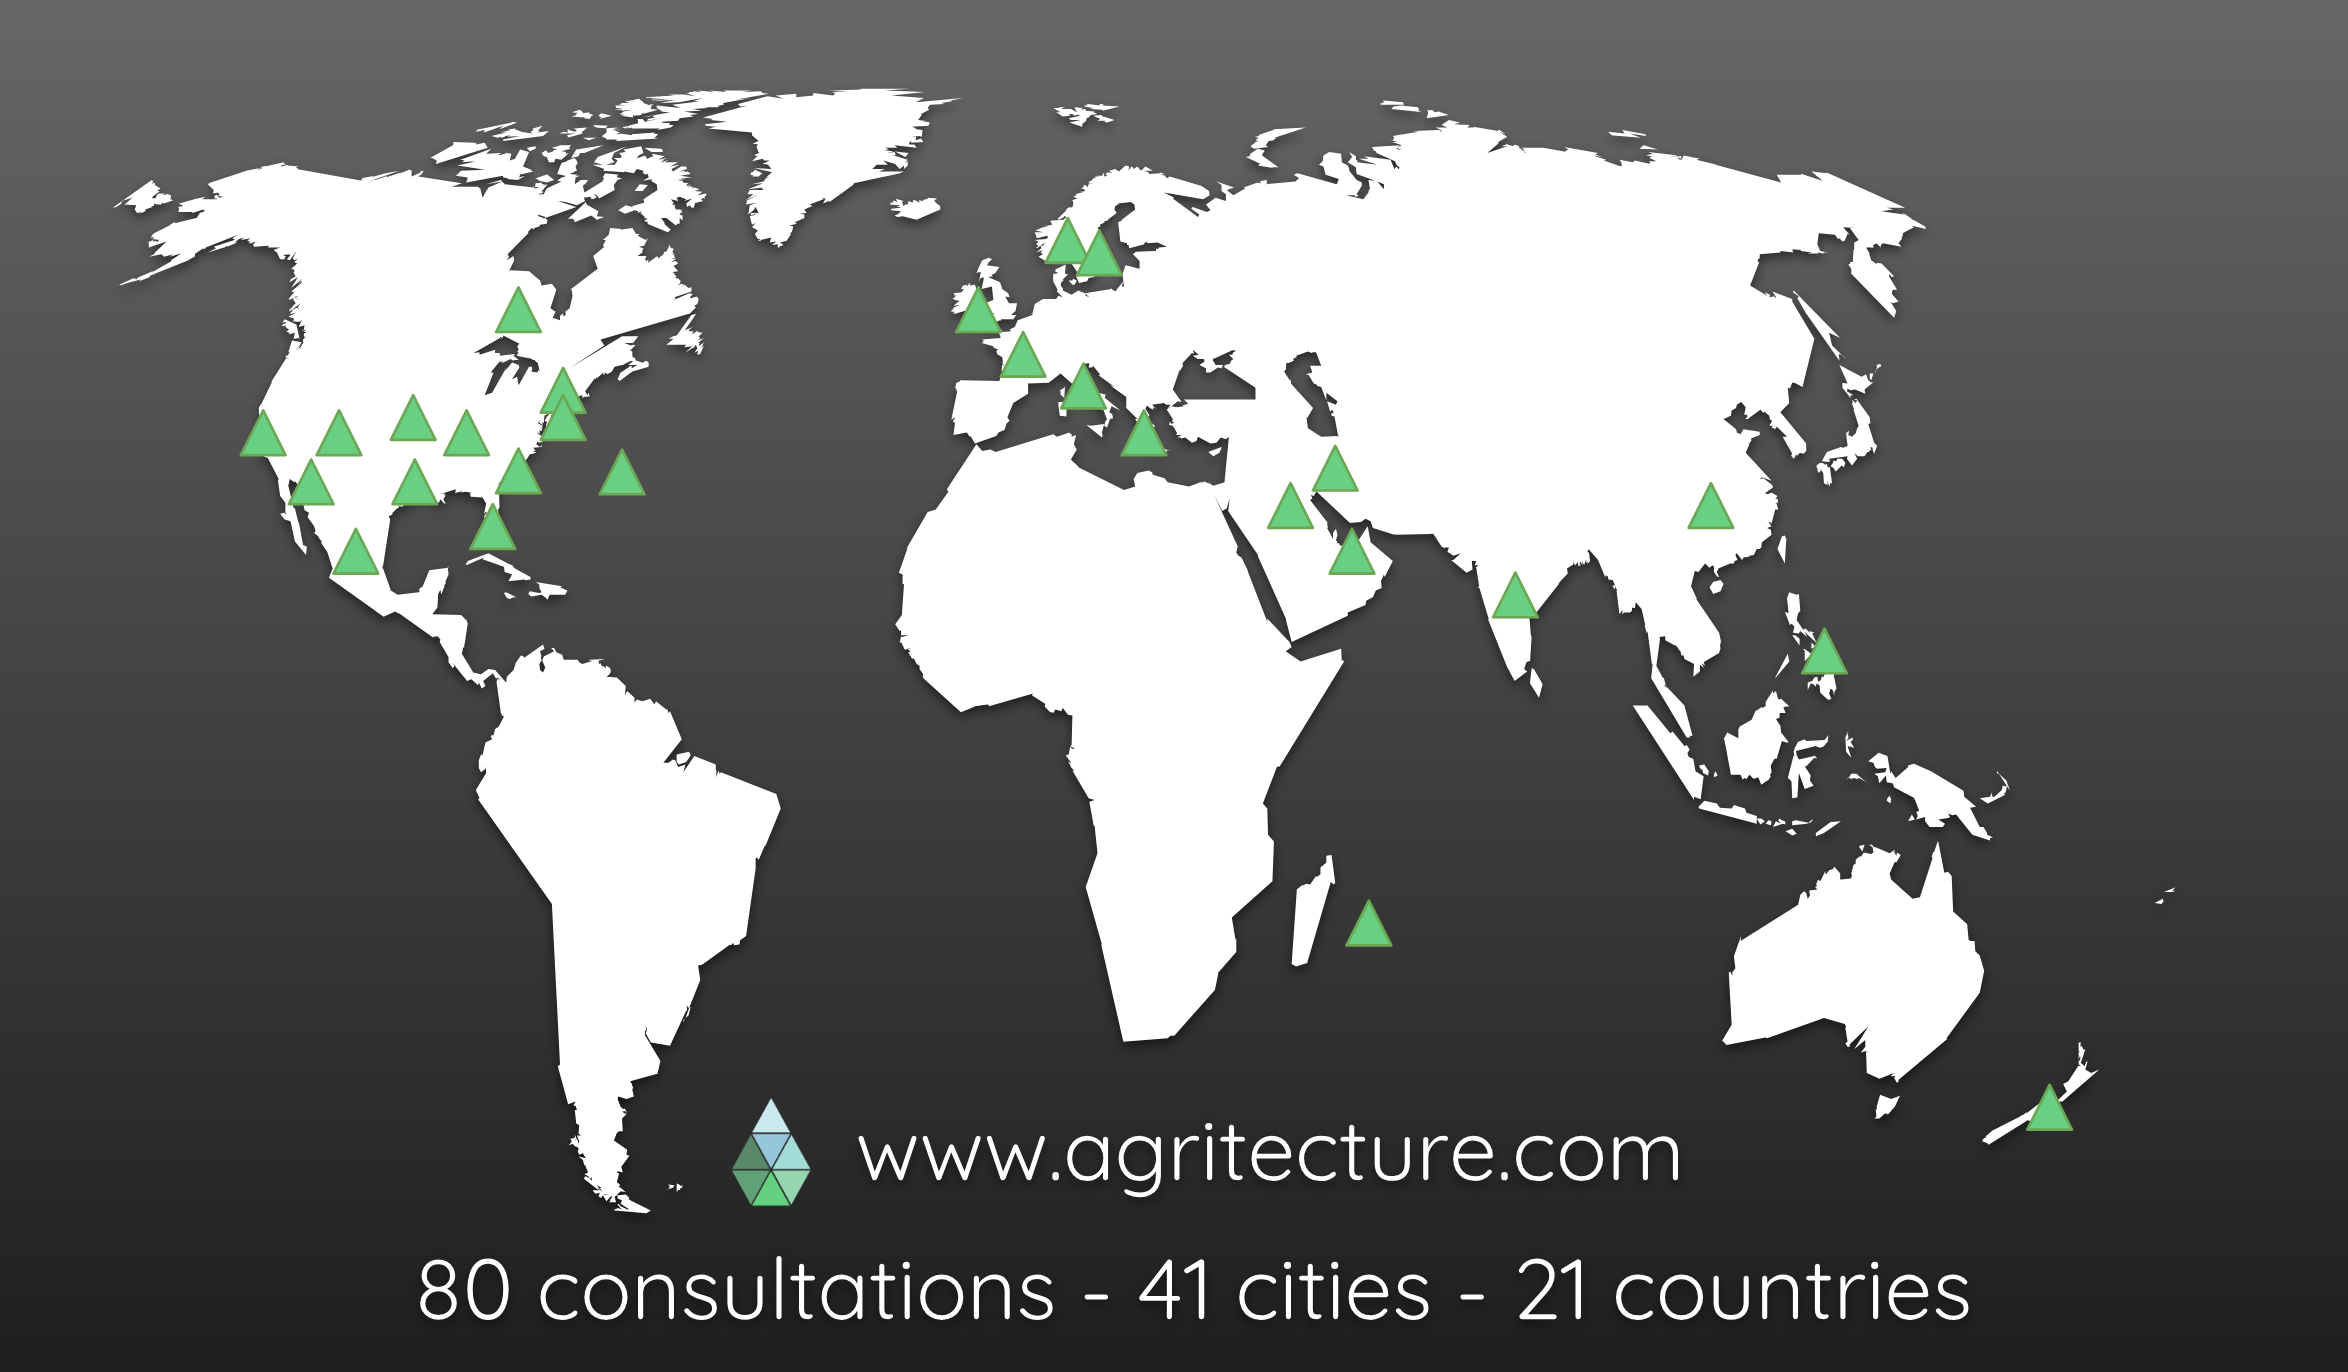 AgritectureConsultingGlobalUrbanAgricultureServices.jpg